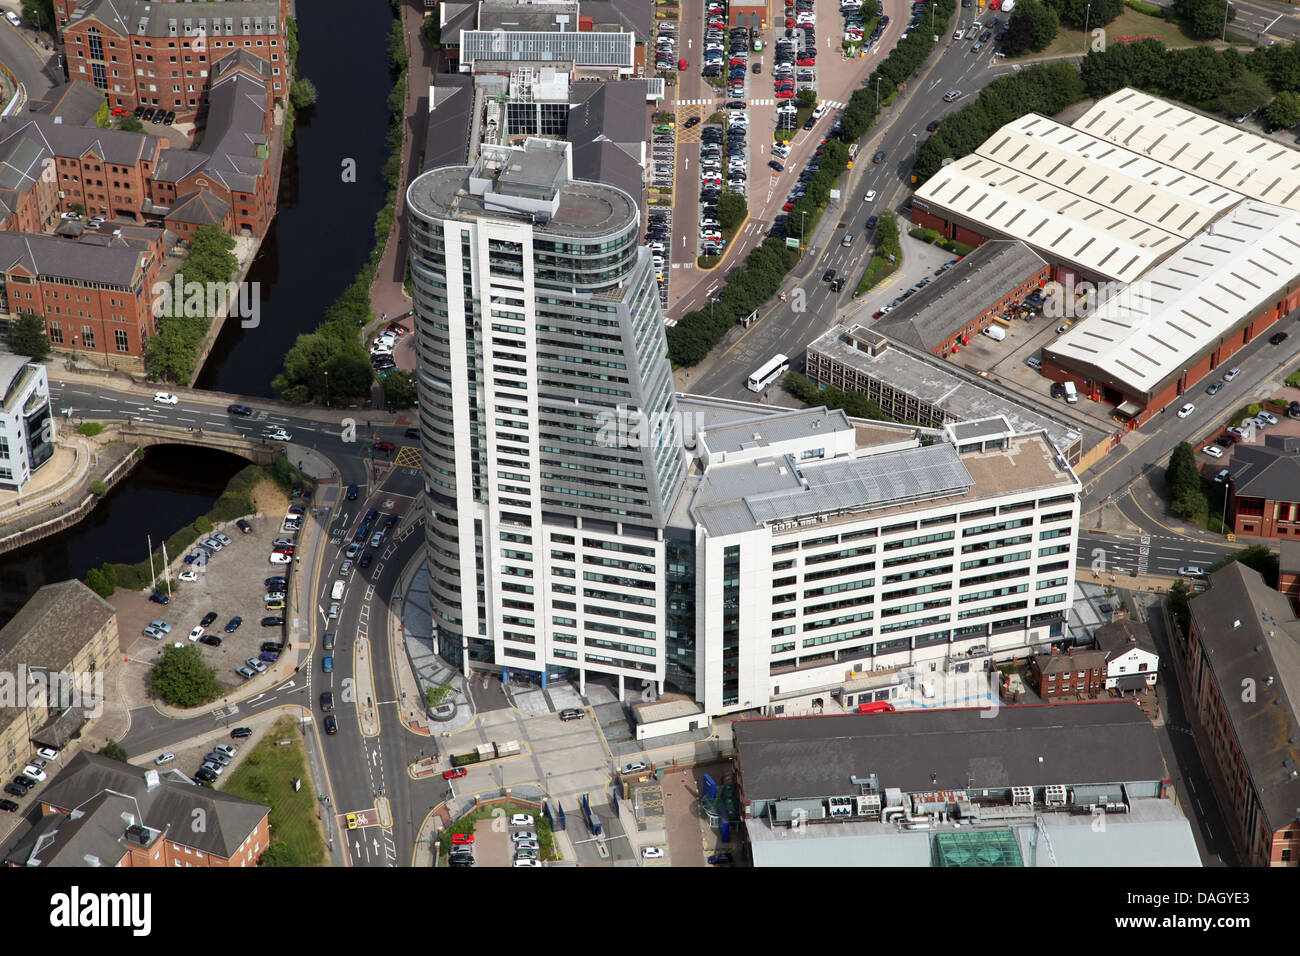 aerial view of Bridgewater Place apartments in Leeds City centre - Stock Image